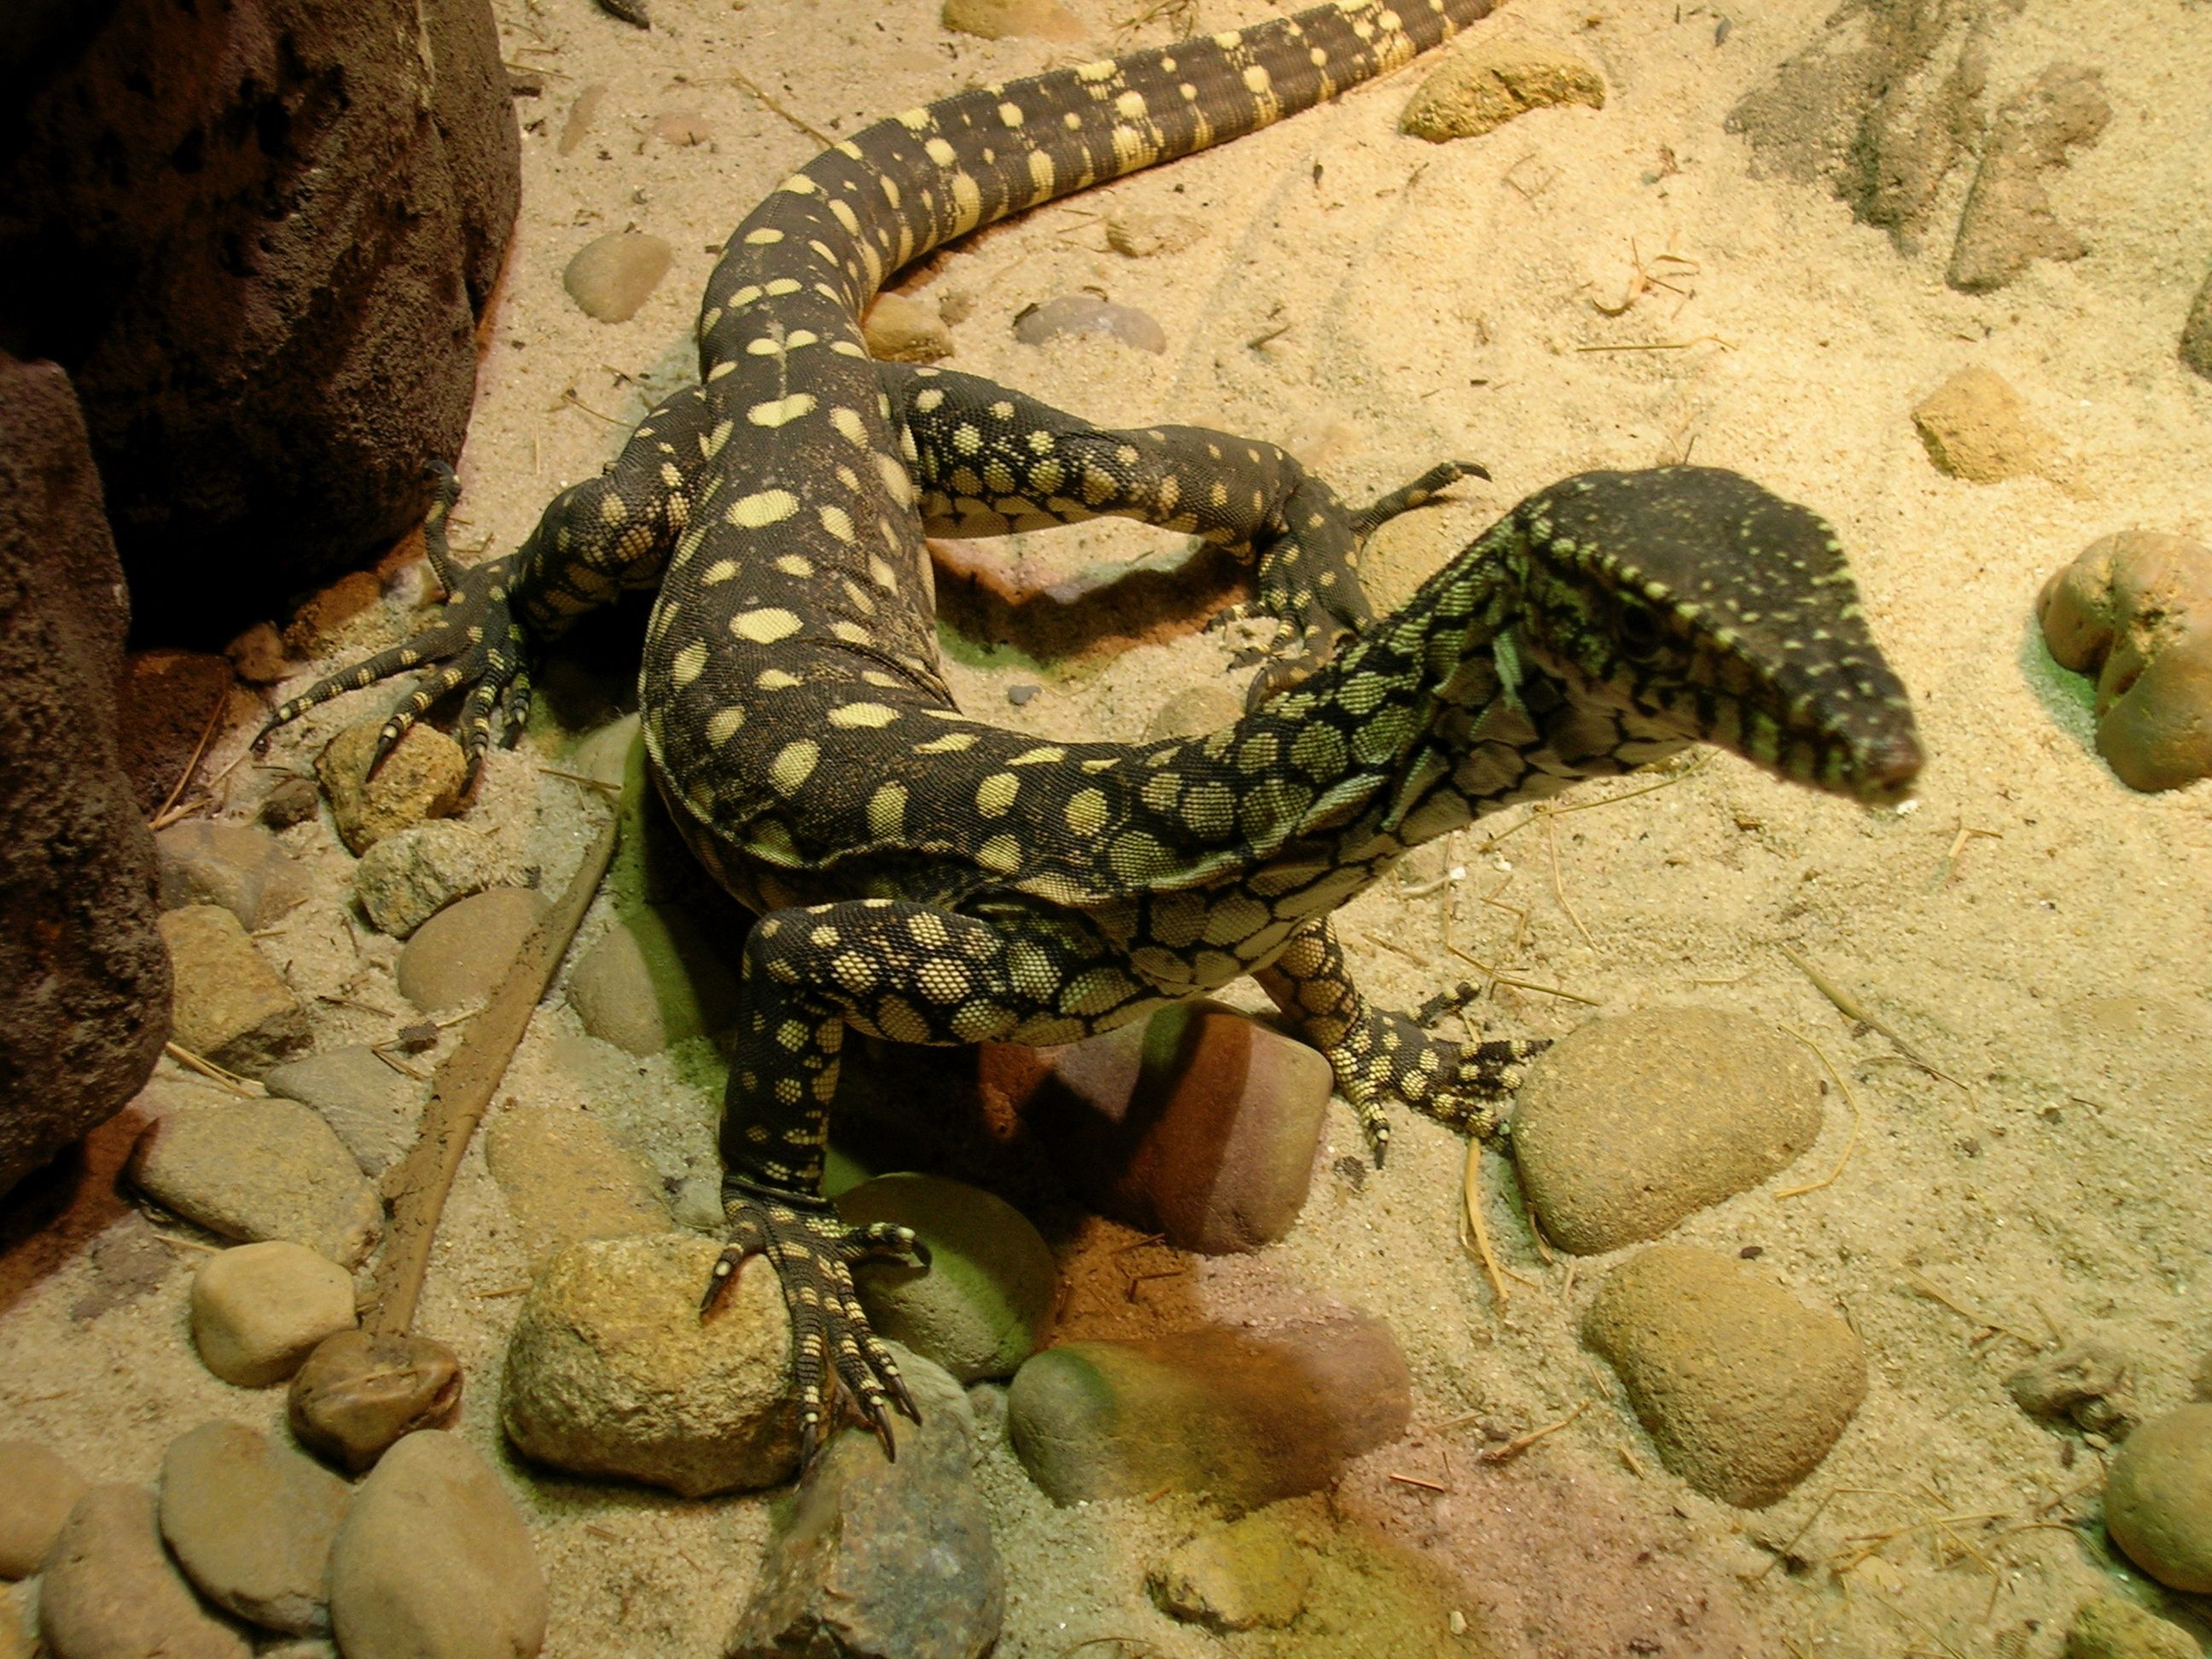 The Monitor lizard is a common name for several lizards